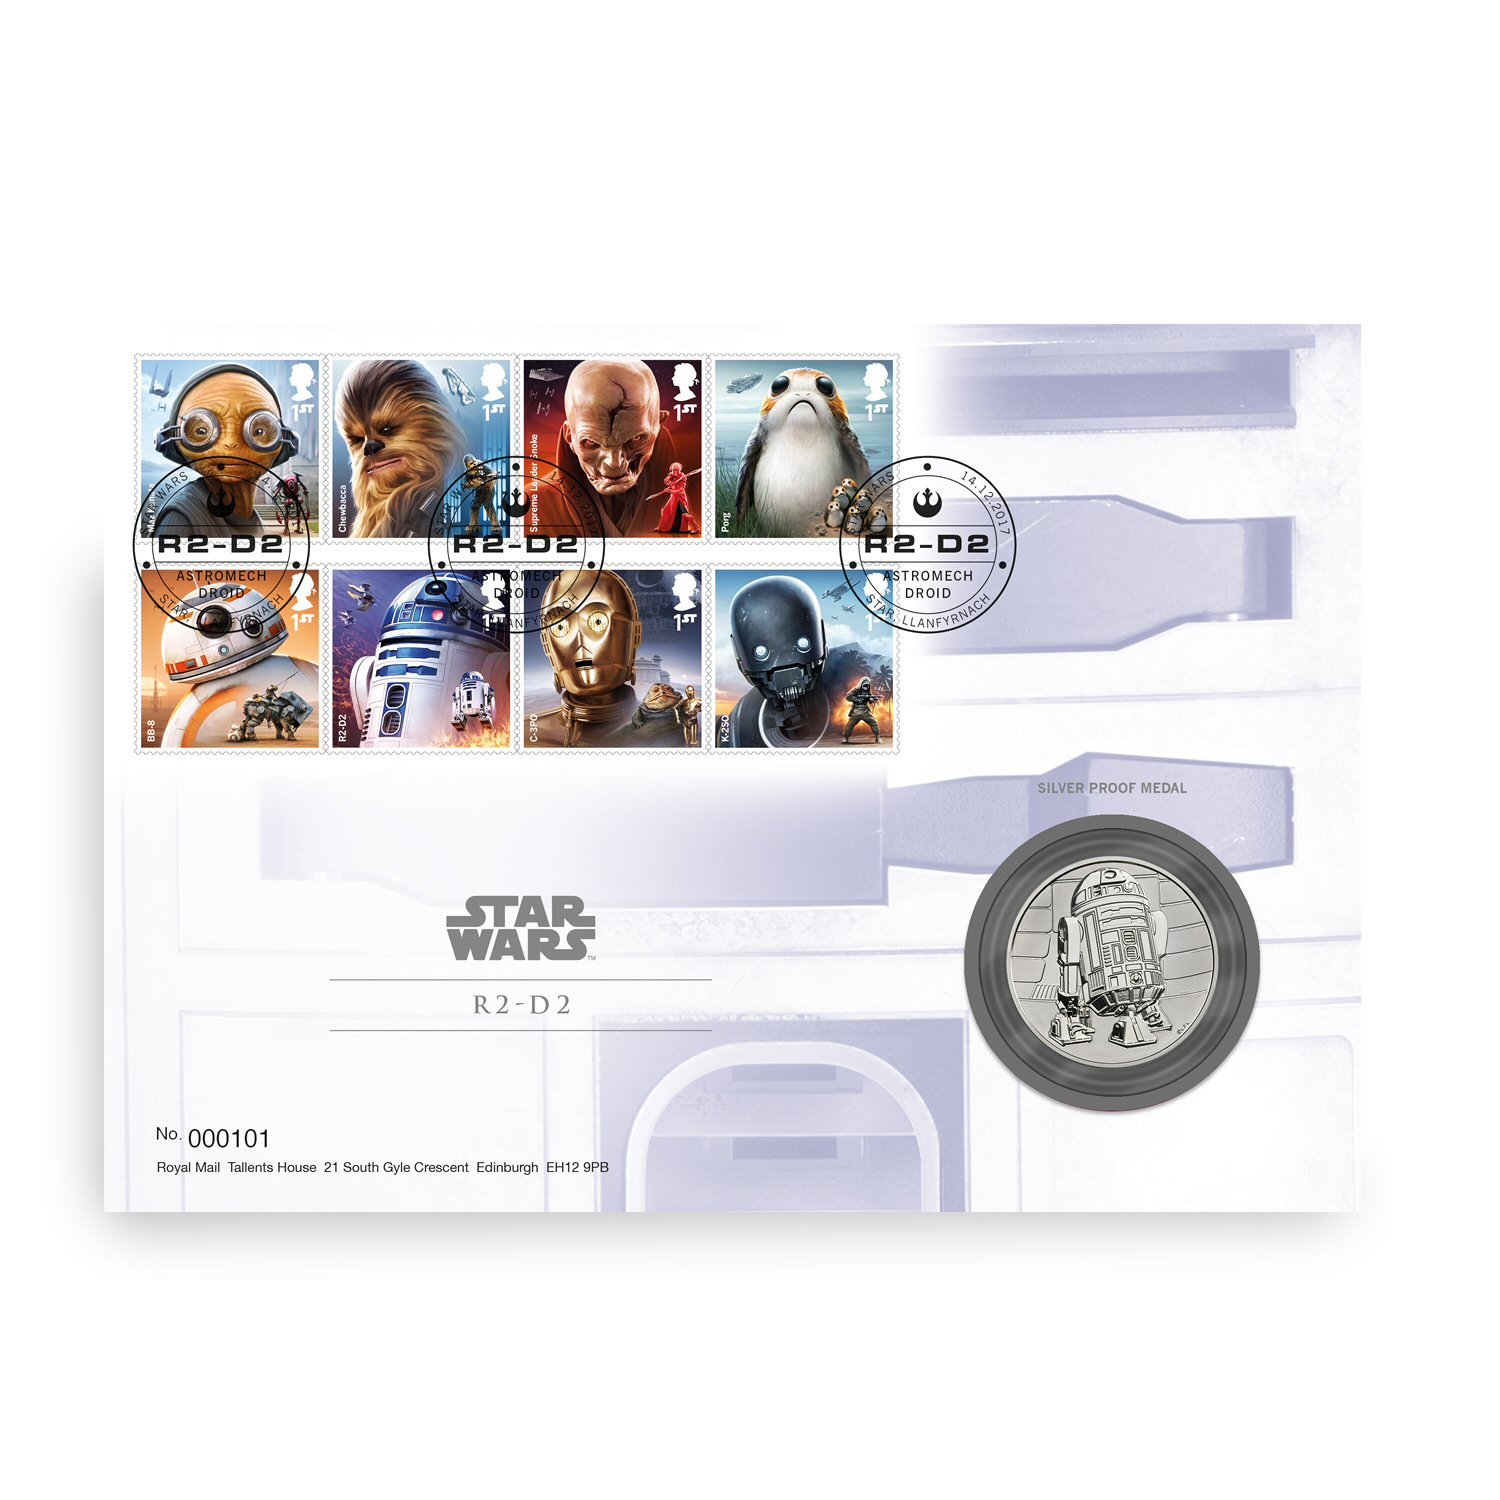 Star Wars R2D2 Silver Proof Medal Cover